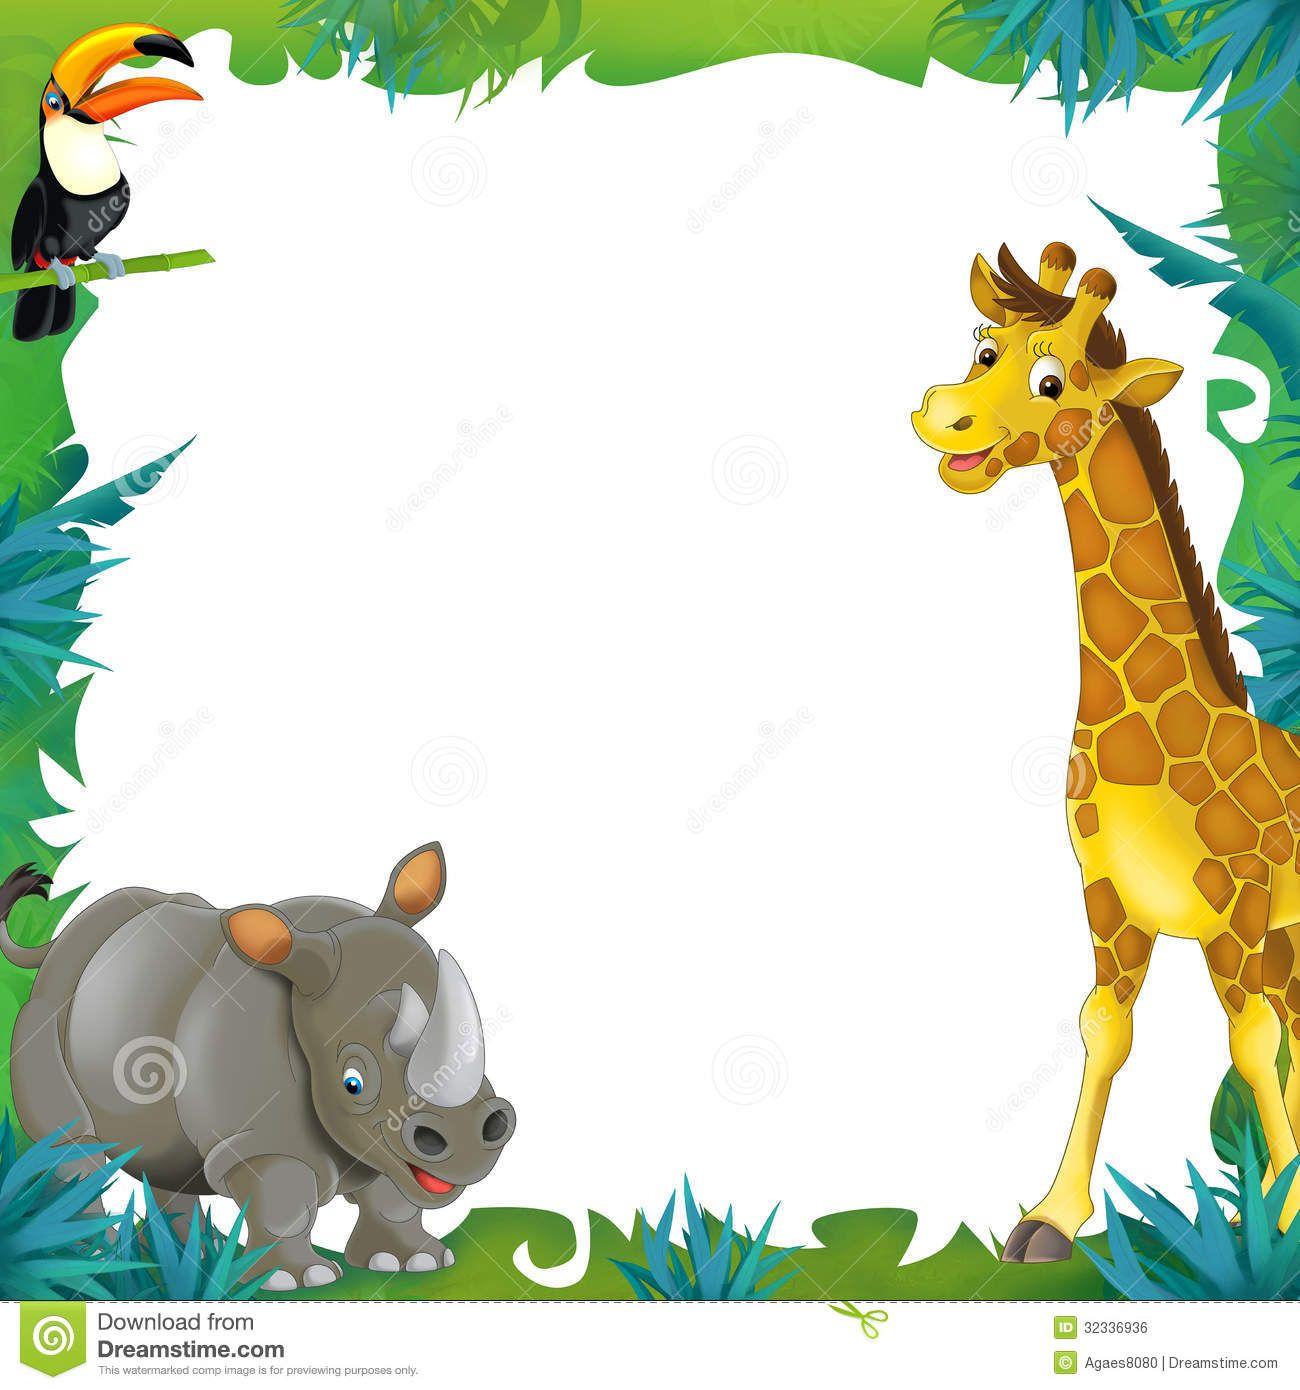 hight resolution of cartoon safari jungle frame border template illustration for the children download from over 29 million high quality stock photos images vectors